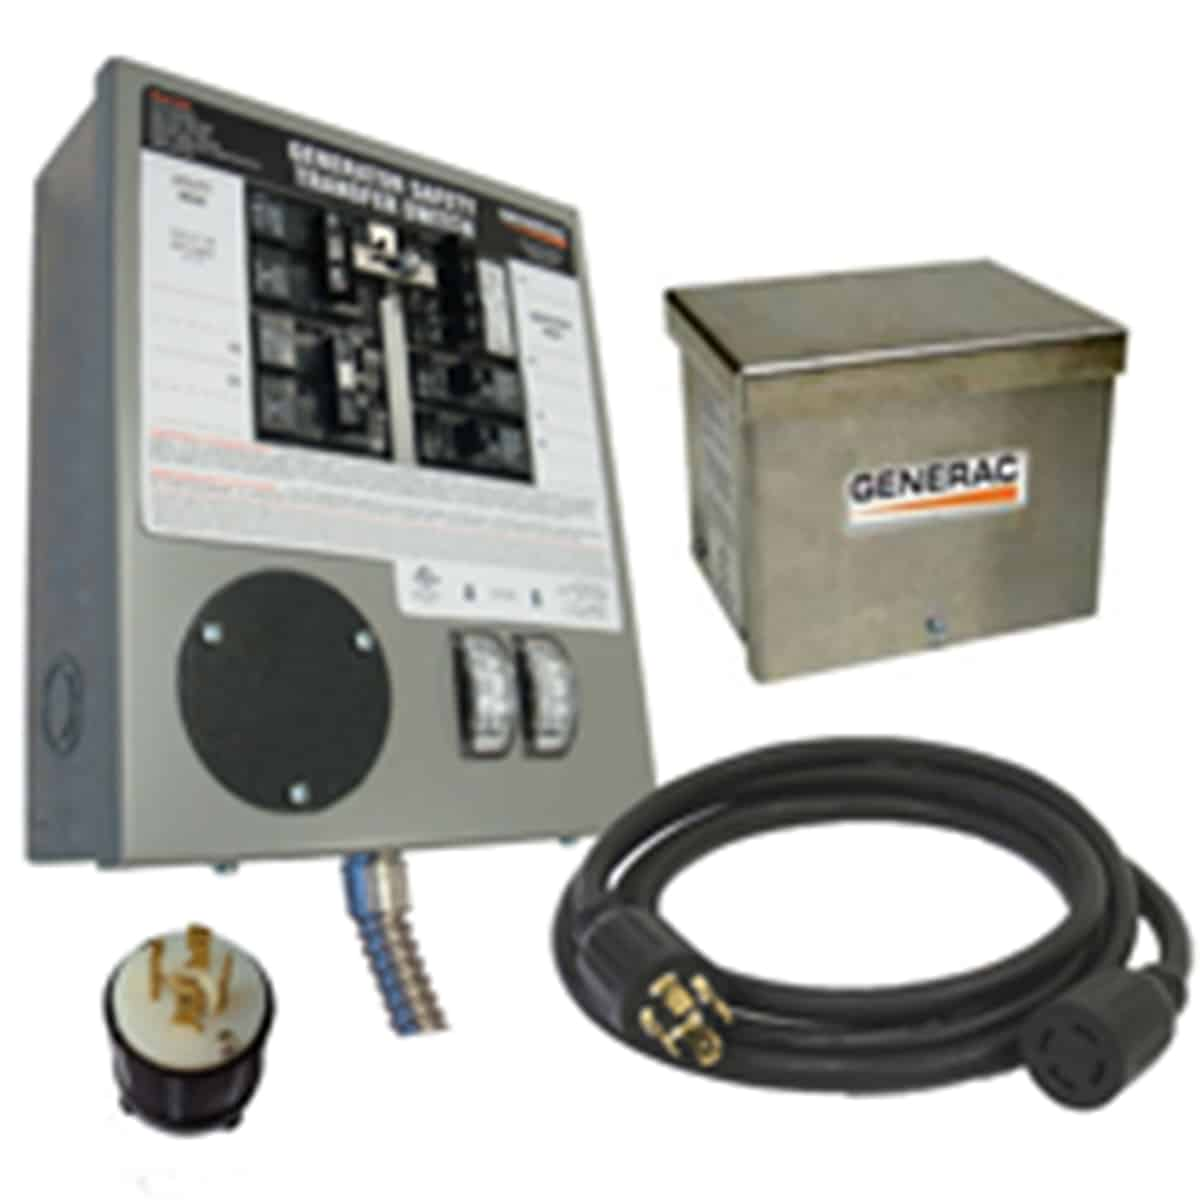 Manual Control Lever : Is your portable generator ready for winter storms